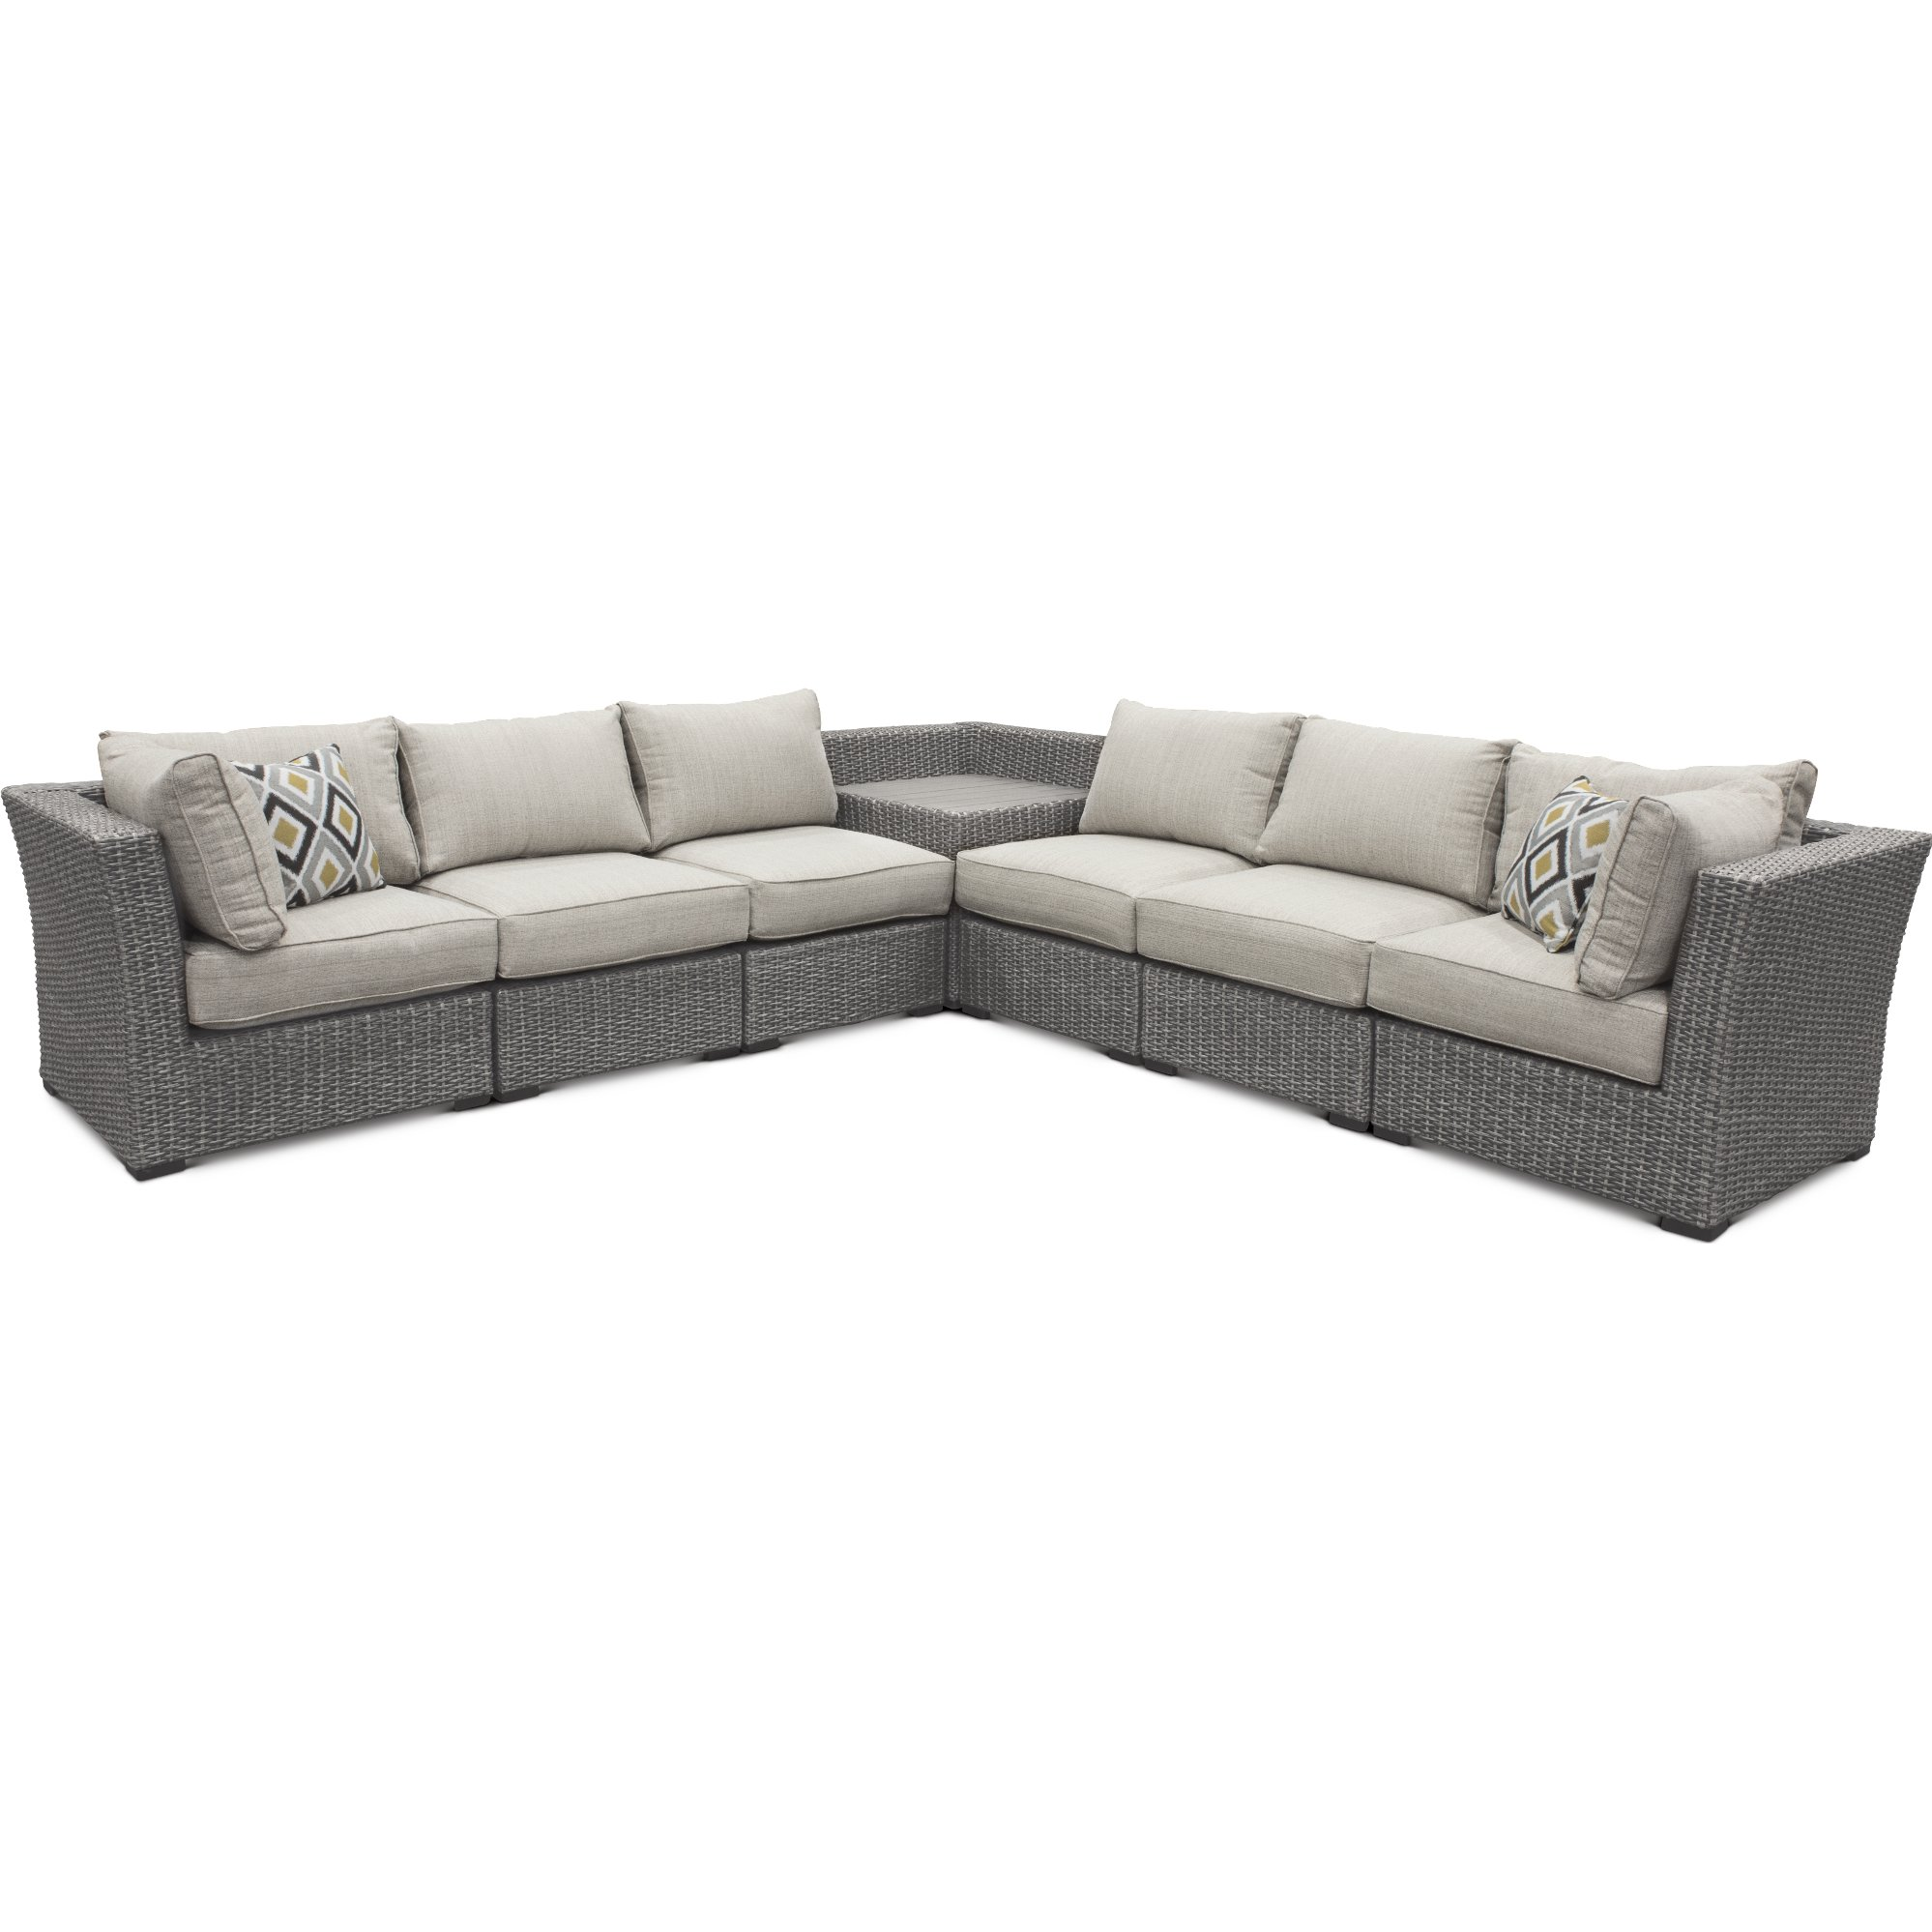 Wicker 7 Piece Patio Sectional with Storage - Tahoe